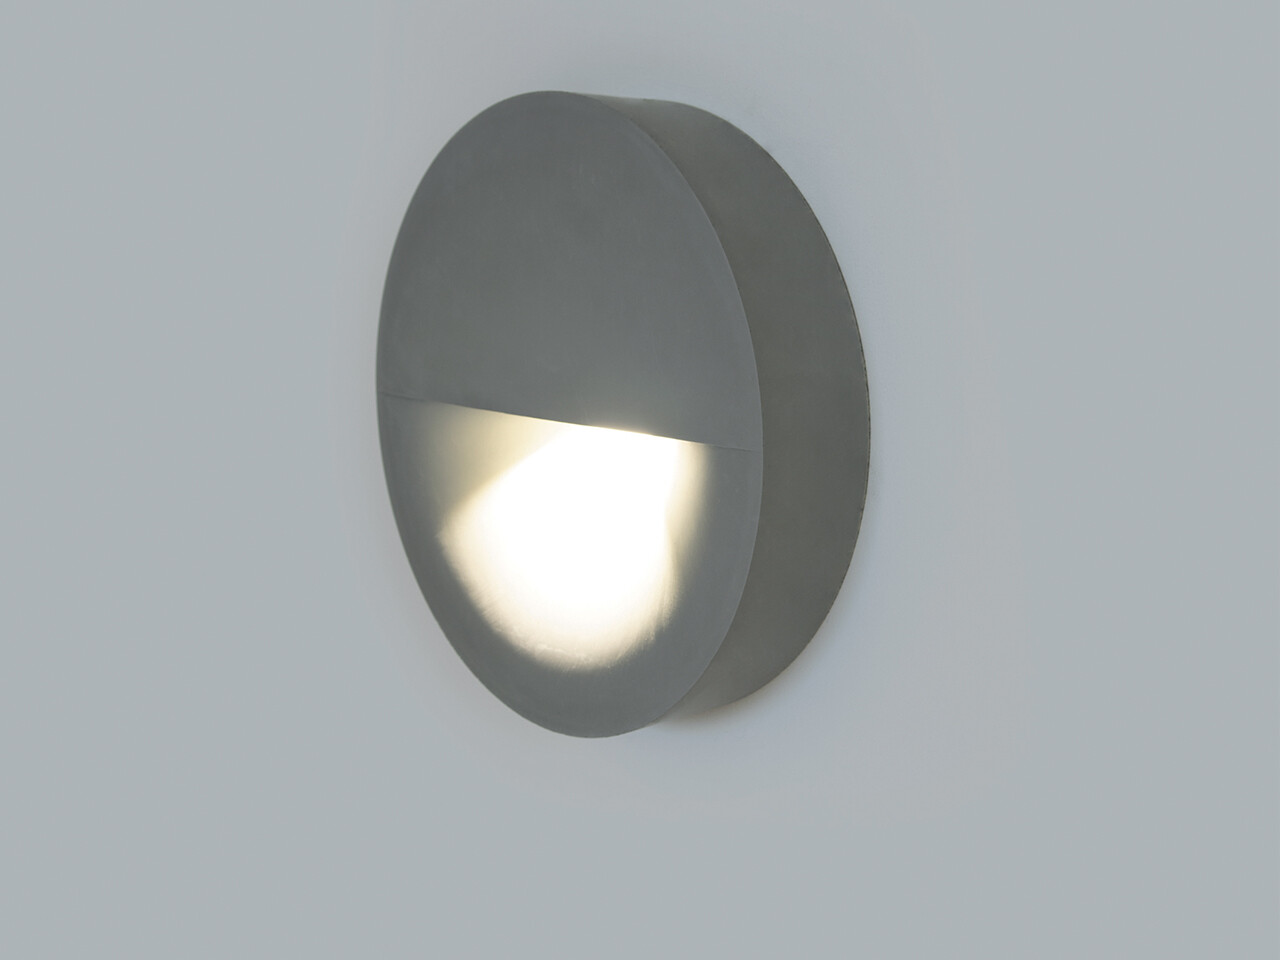 9010 Wandleuchte LEVICO LED 10W, IP65, weiss